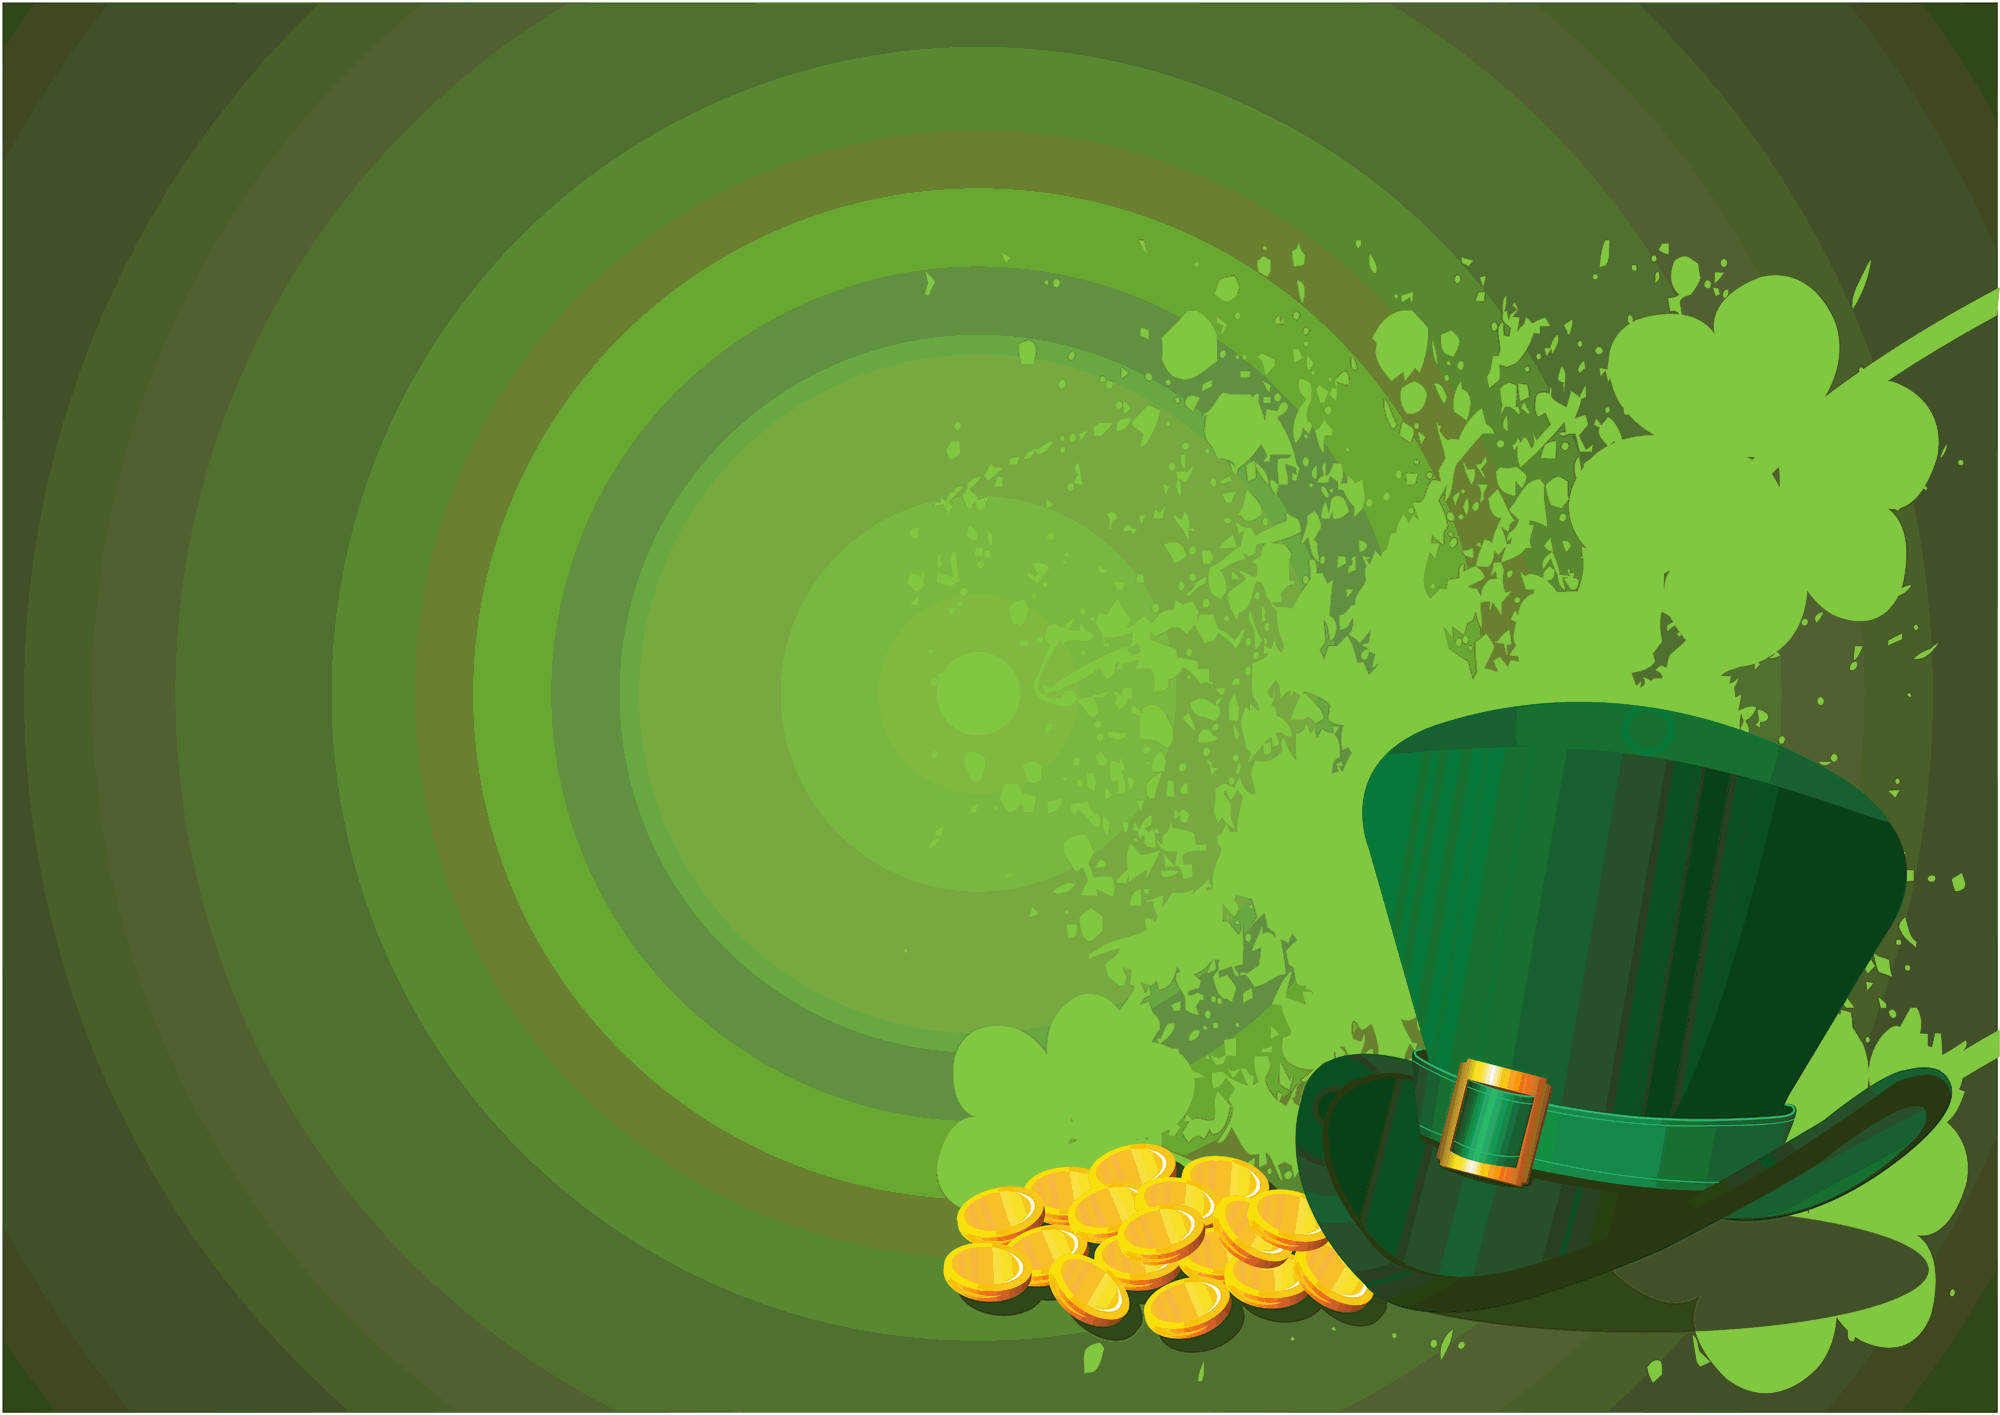 2000x1415 St Patrick's Day Background | Cool Images